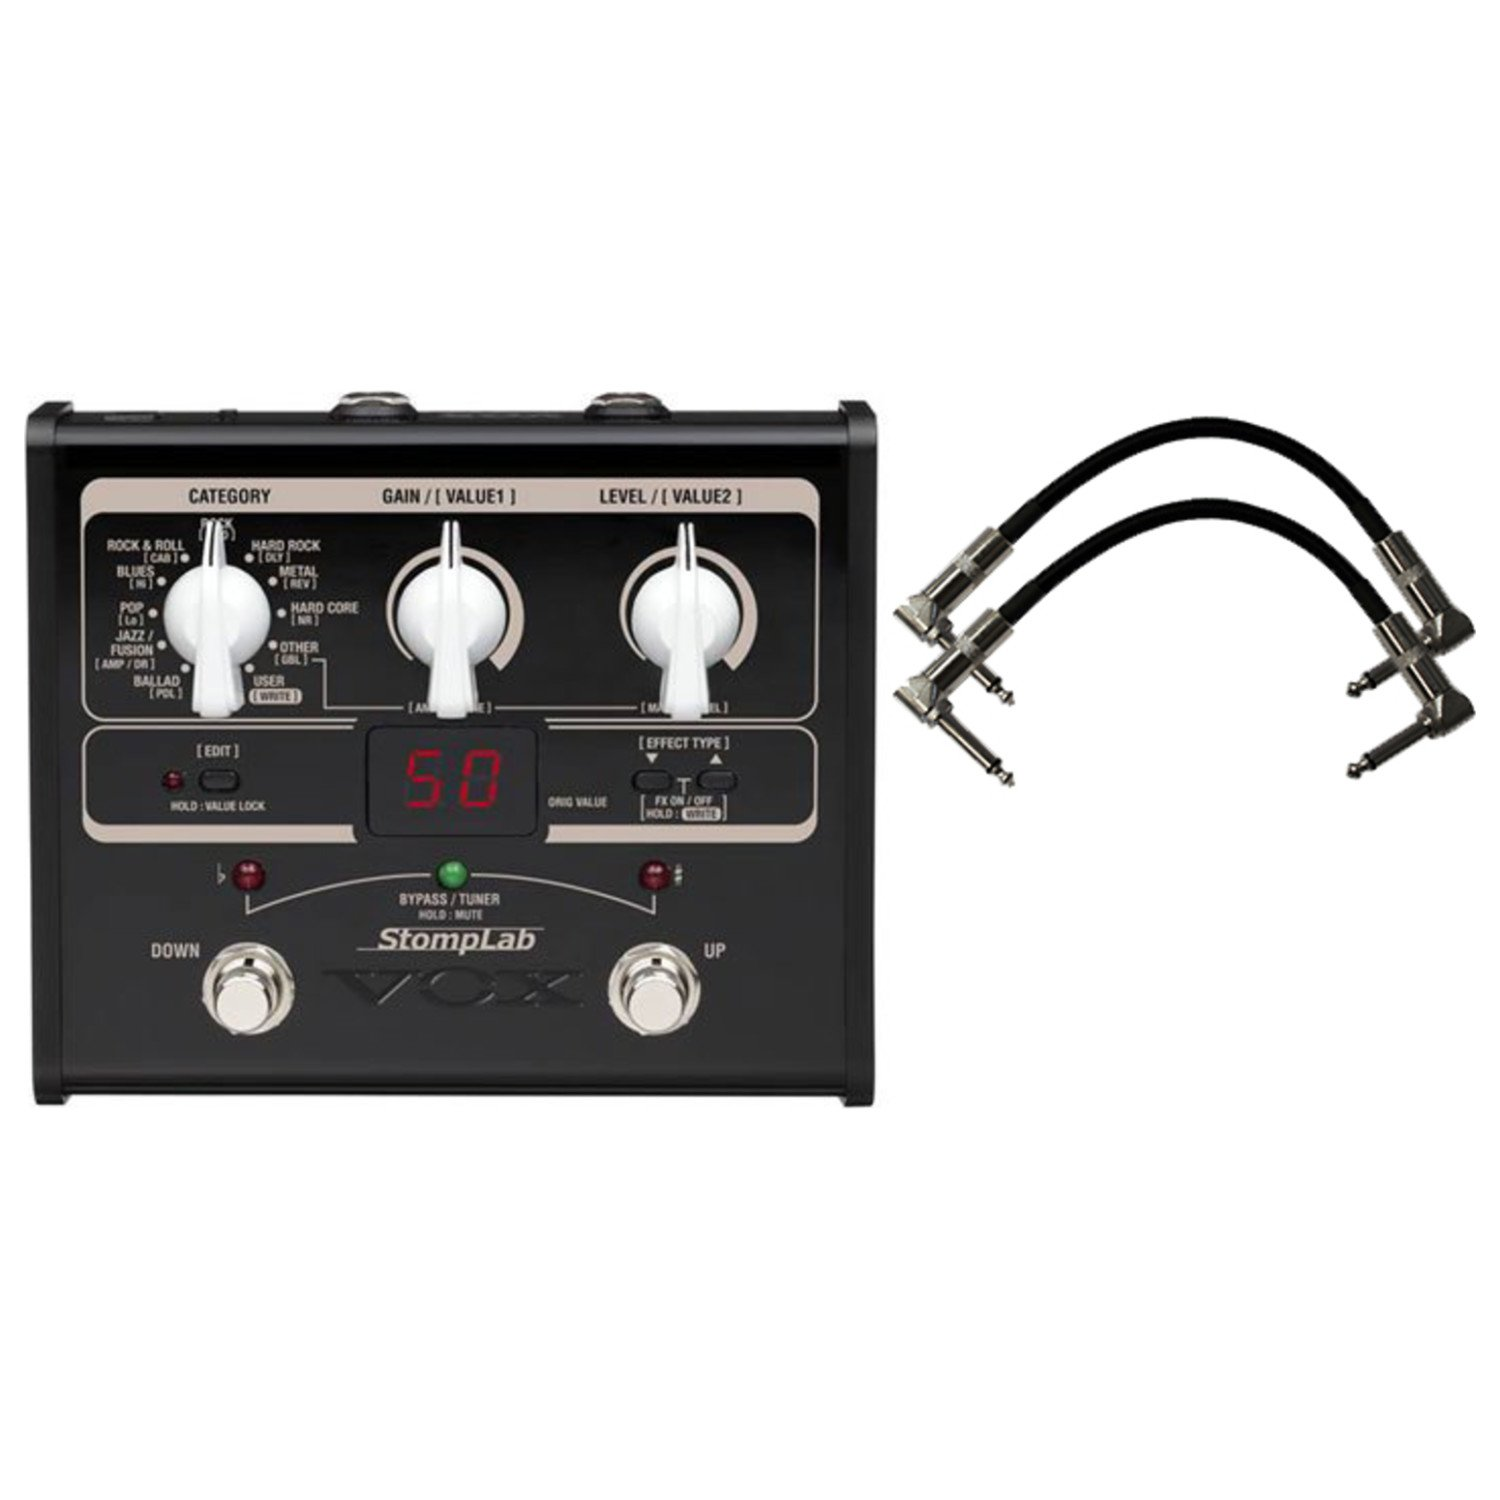 Vox Stomplab1G Guitar Effects Pedal w/(2) 6'' Patch Cables by Vox